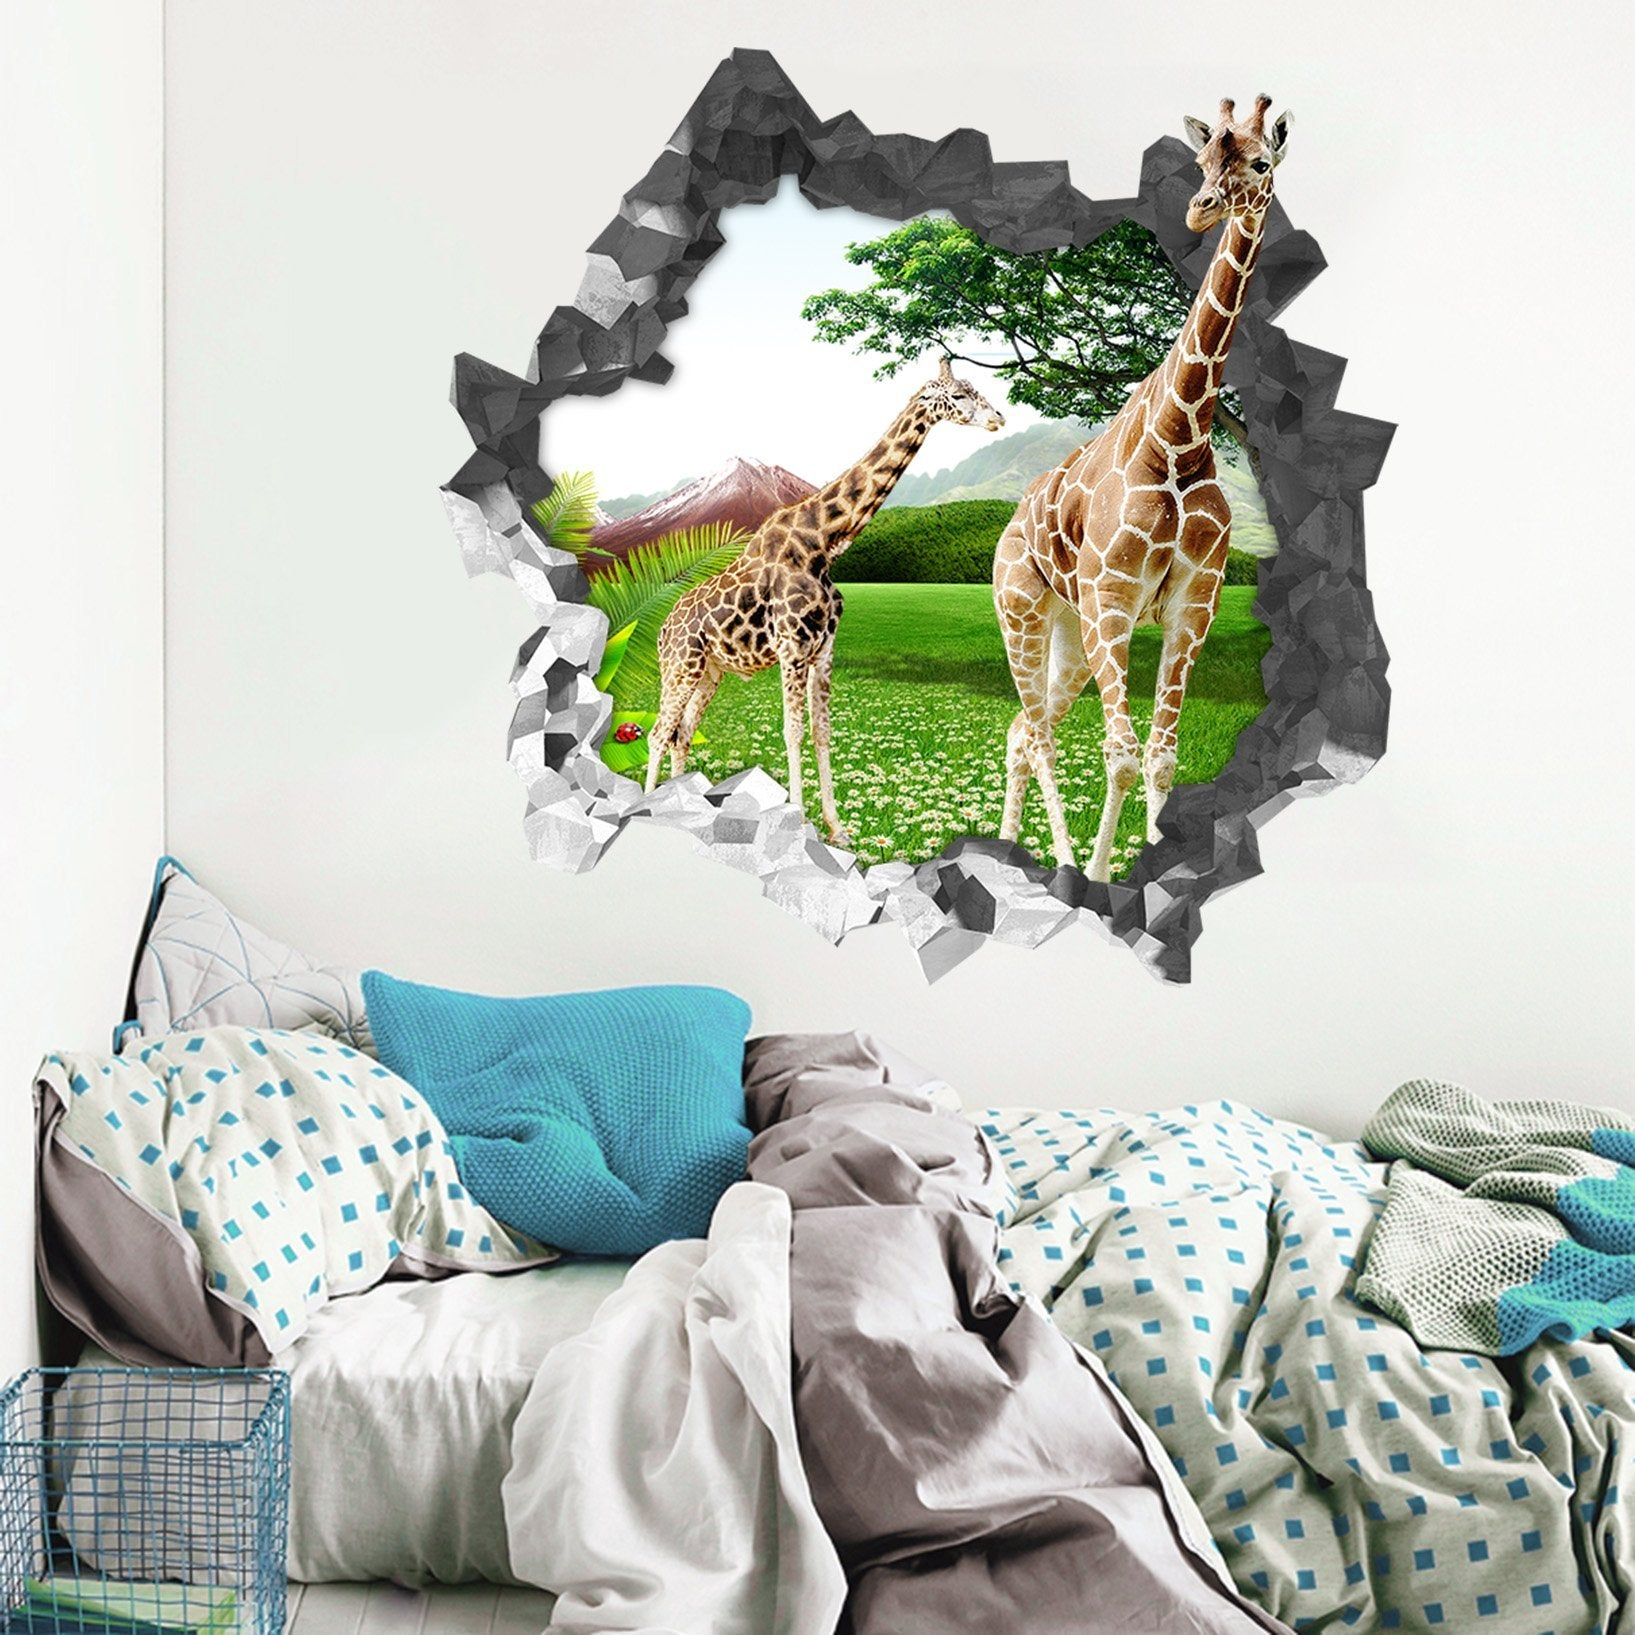 3D Lawn Giraffes 6 Broken Wall Murals Wallpaper AJ Wallpaper